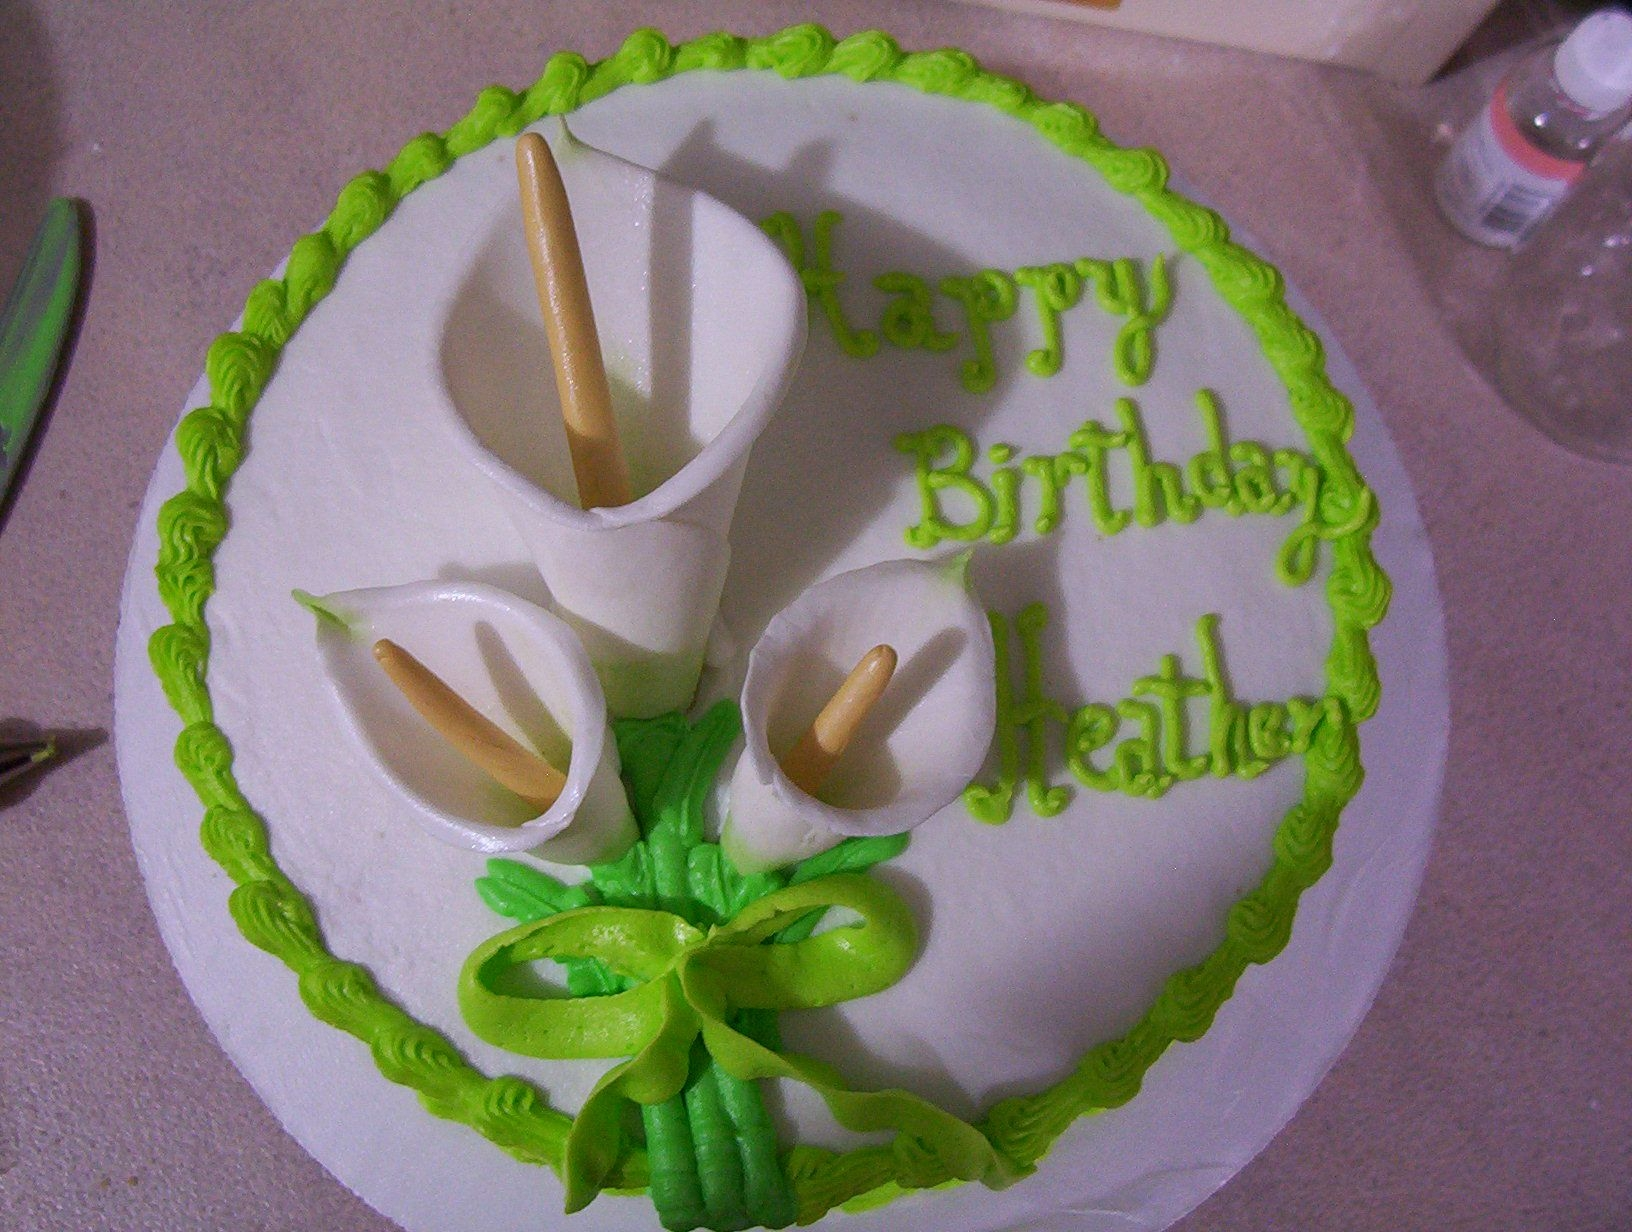 Calla Lily Birthdya Cake This is a 2 layer with buttercream frosting & gumpaste flowers. I did the words free-hand, I wish someone could tell me an easier/...